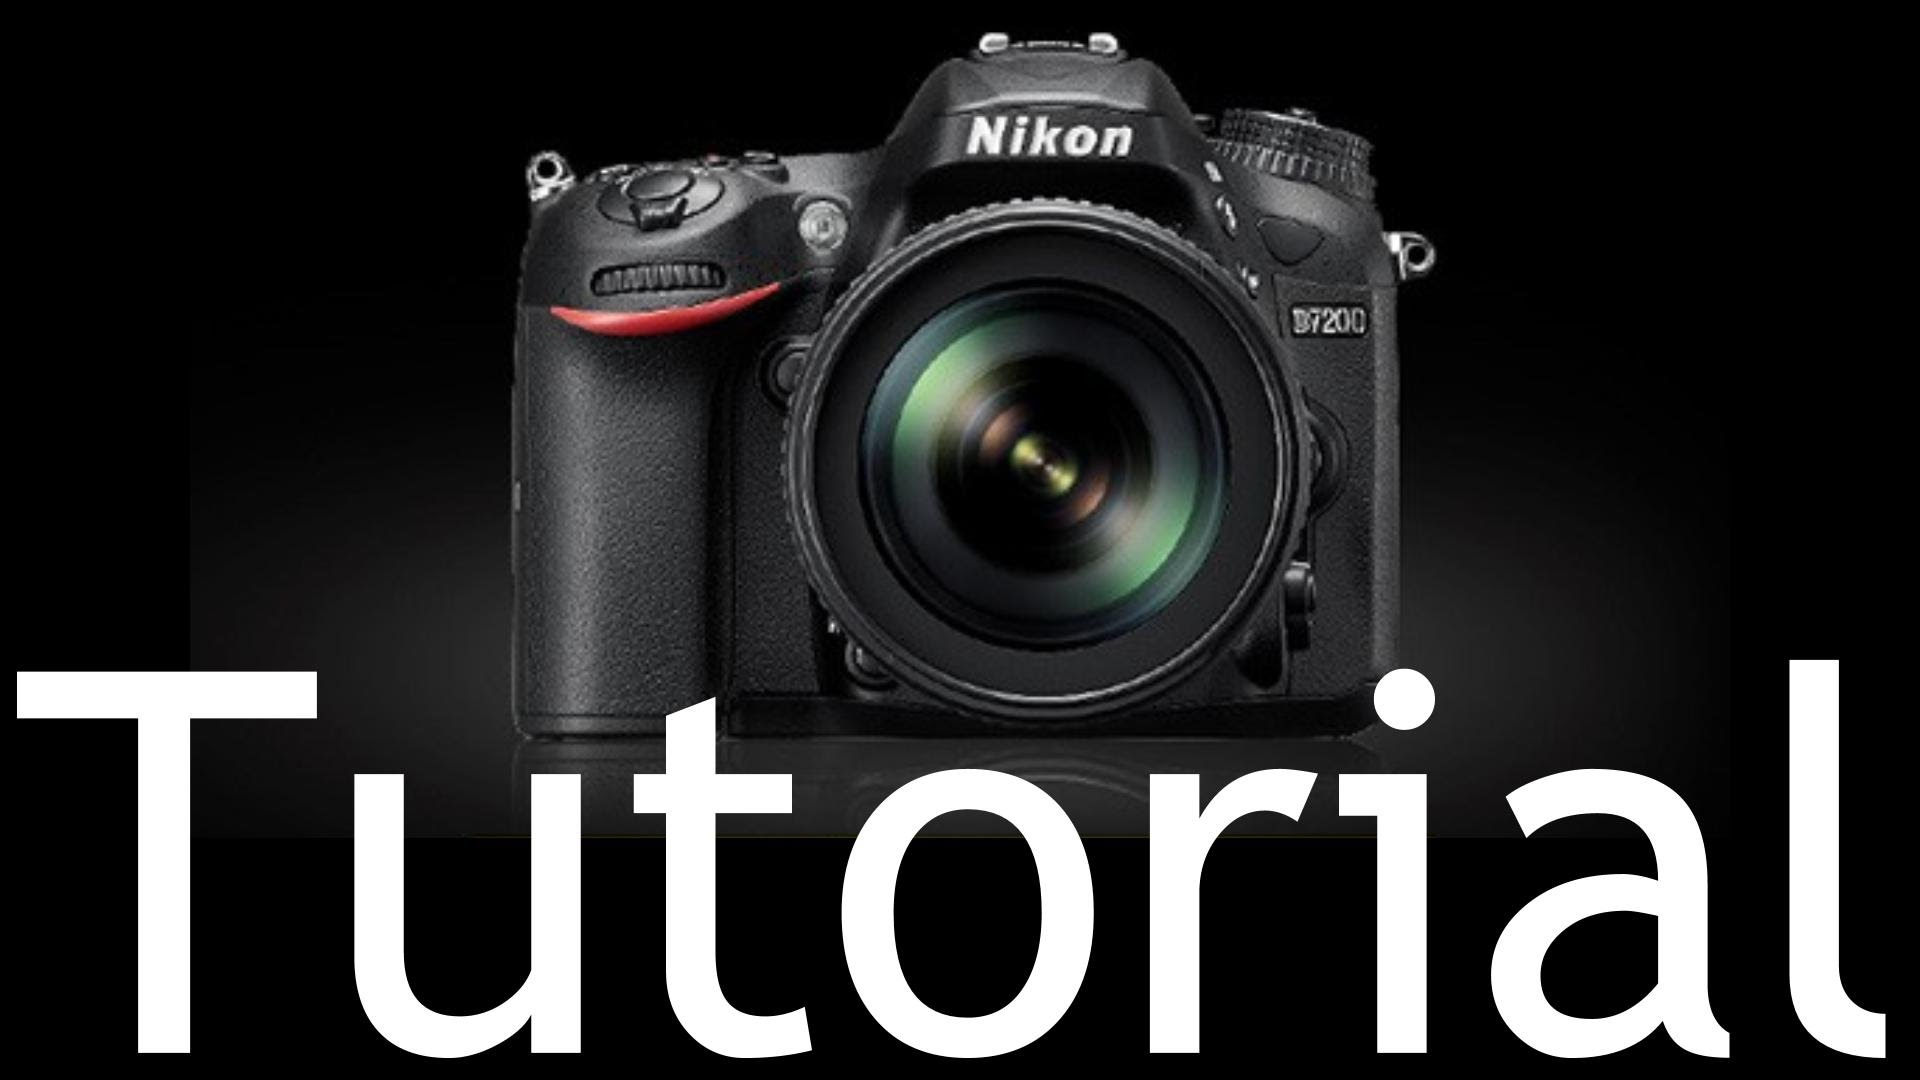 Nikon D7200 Tutorial –  using the Nikon D7200 DSLR Camera